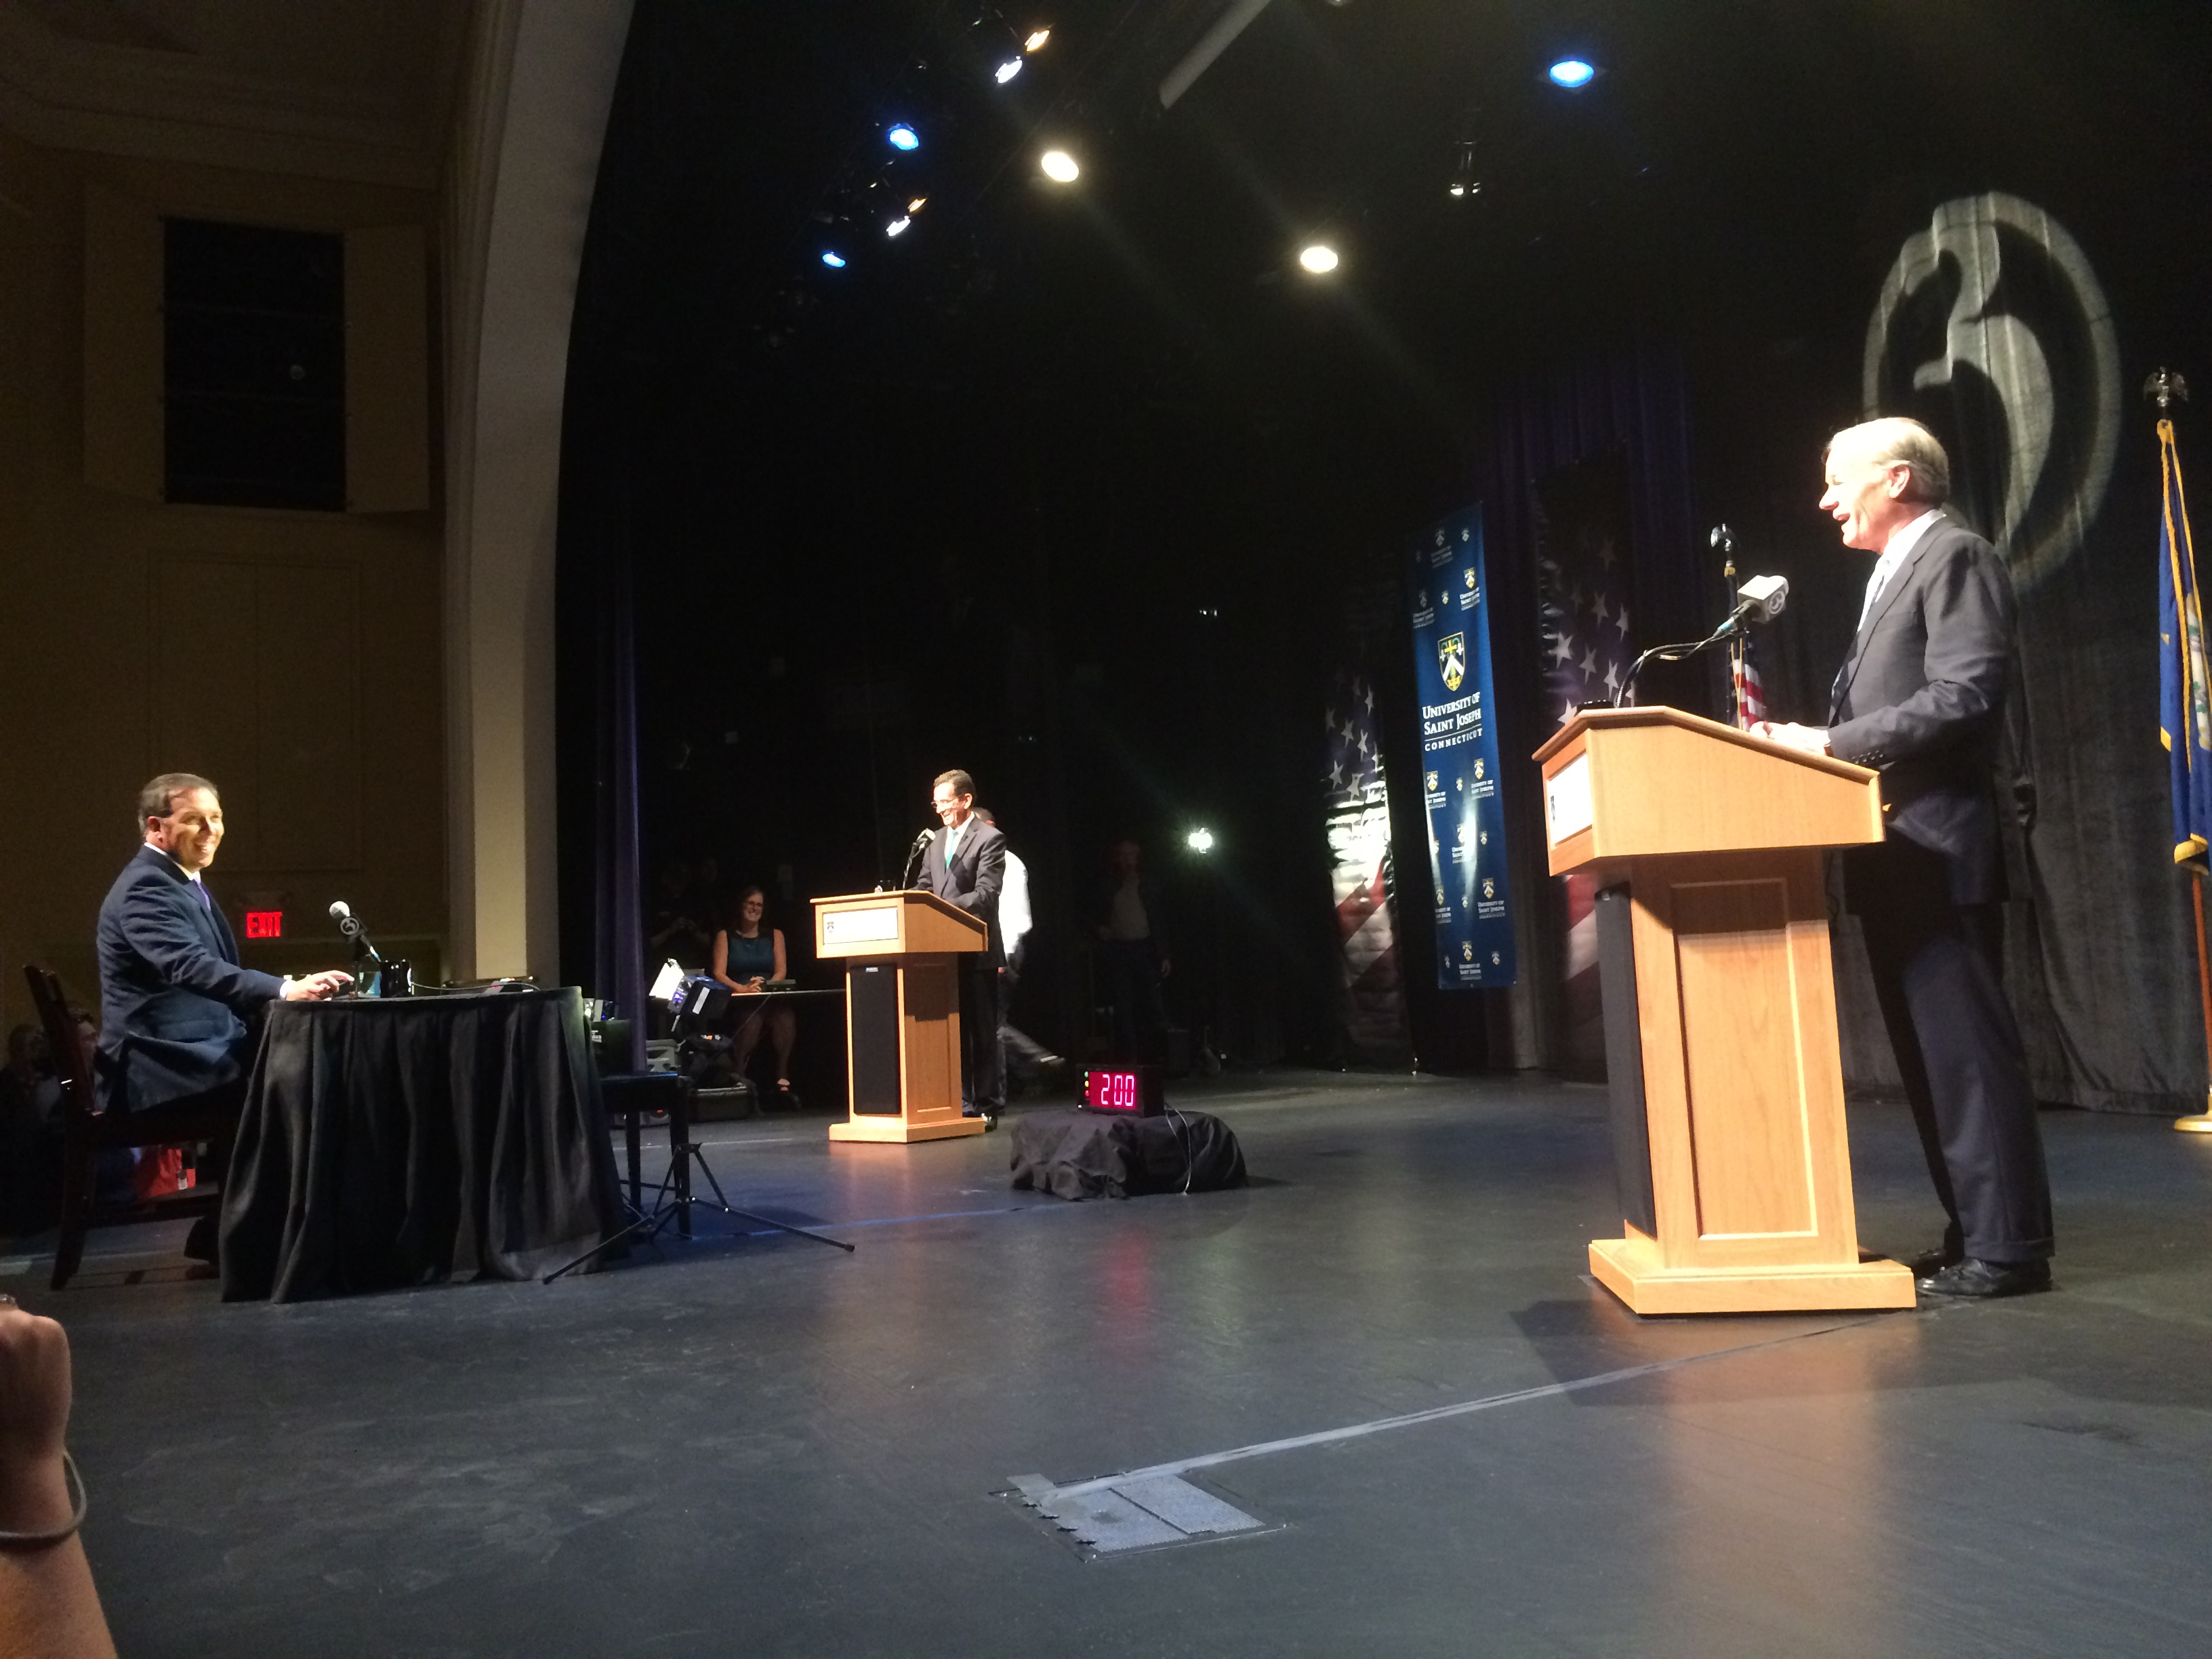 In 2nd debate, Malloy is proud and Foley incredulous